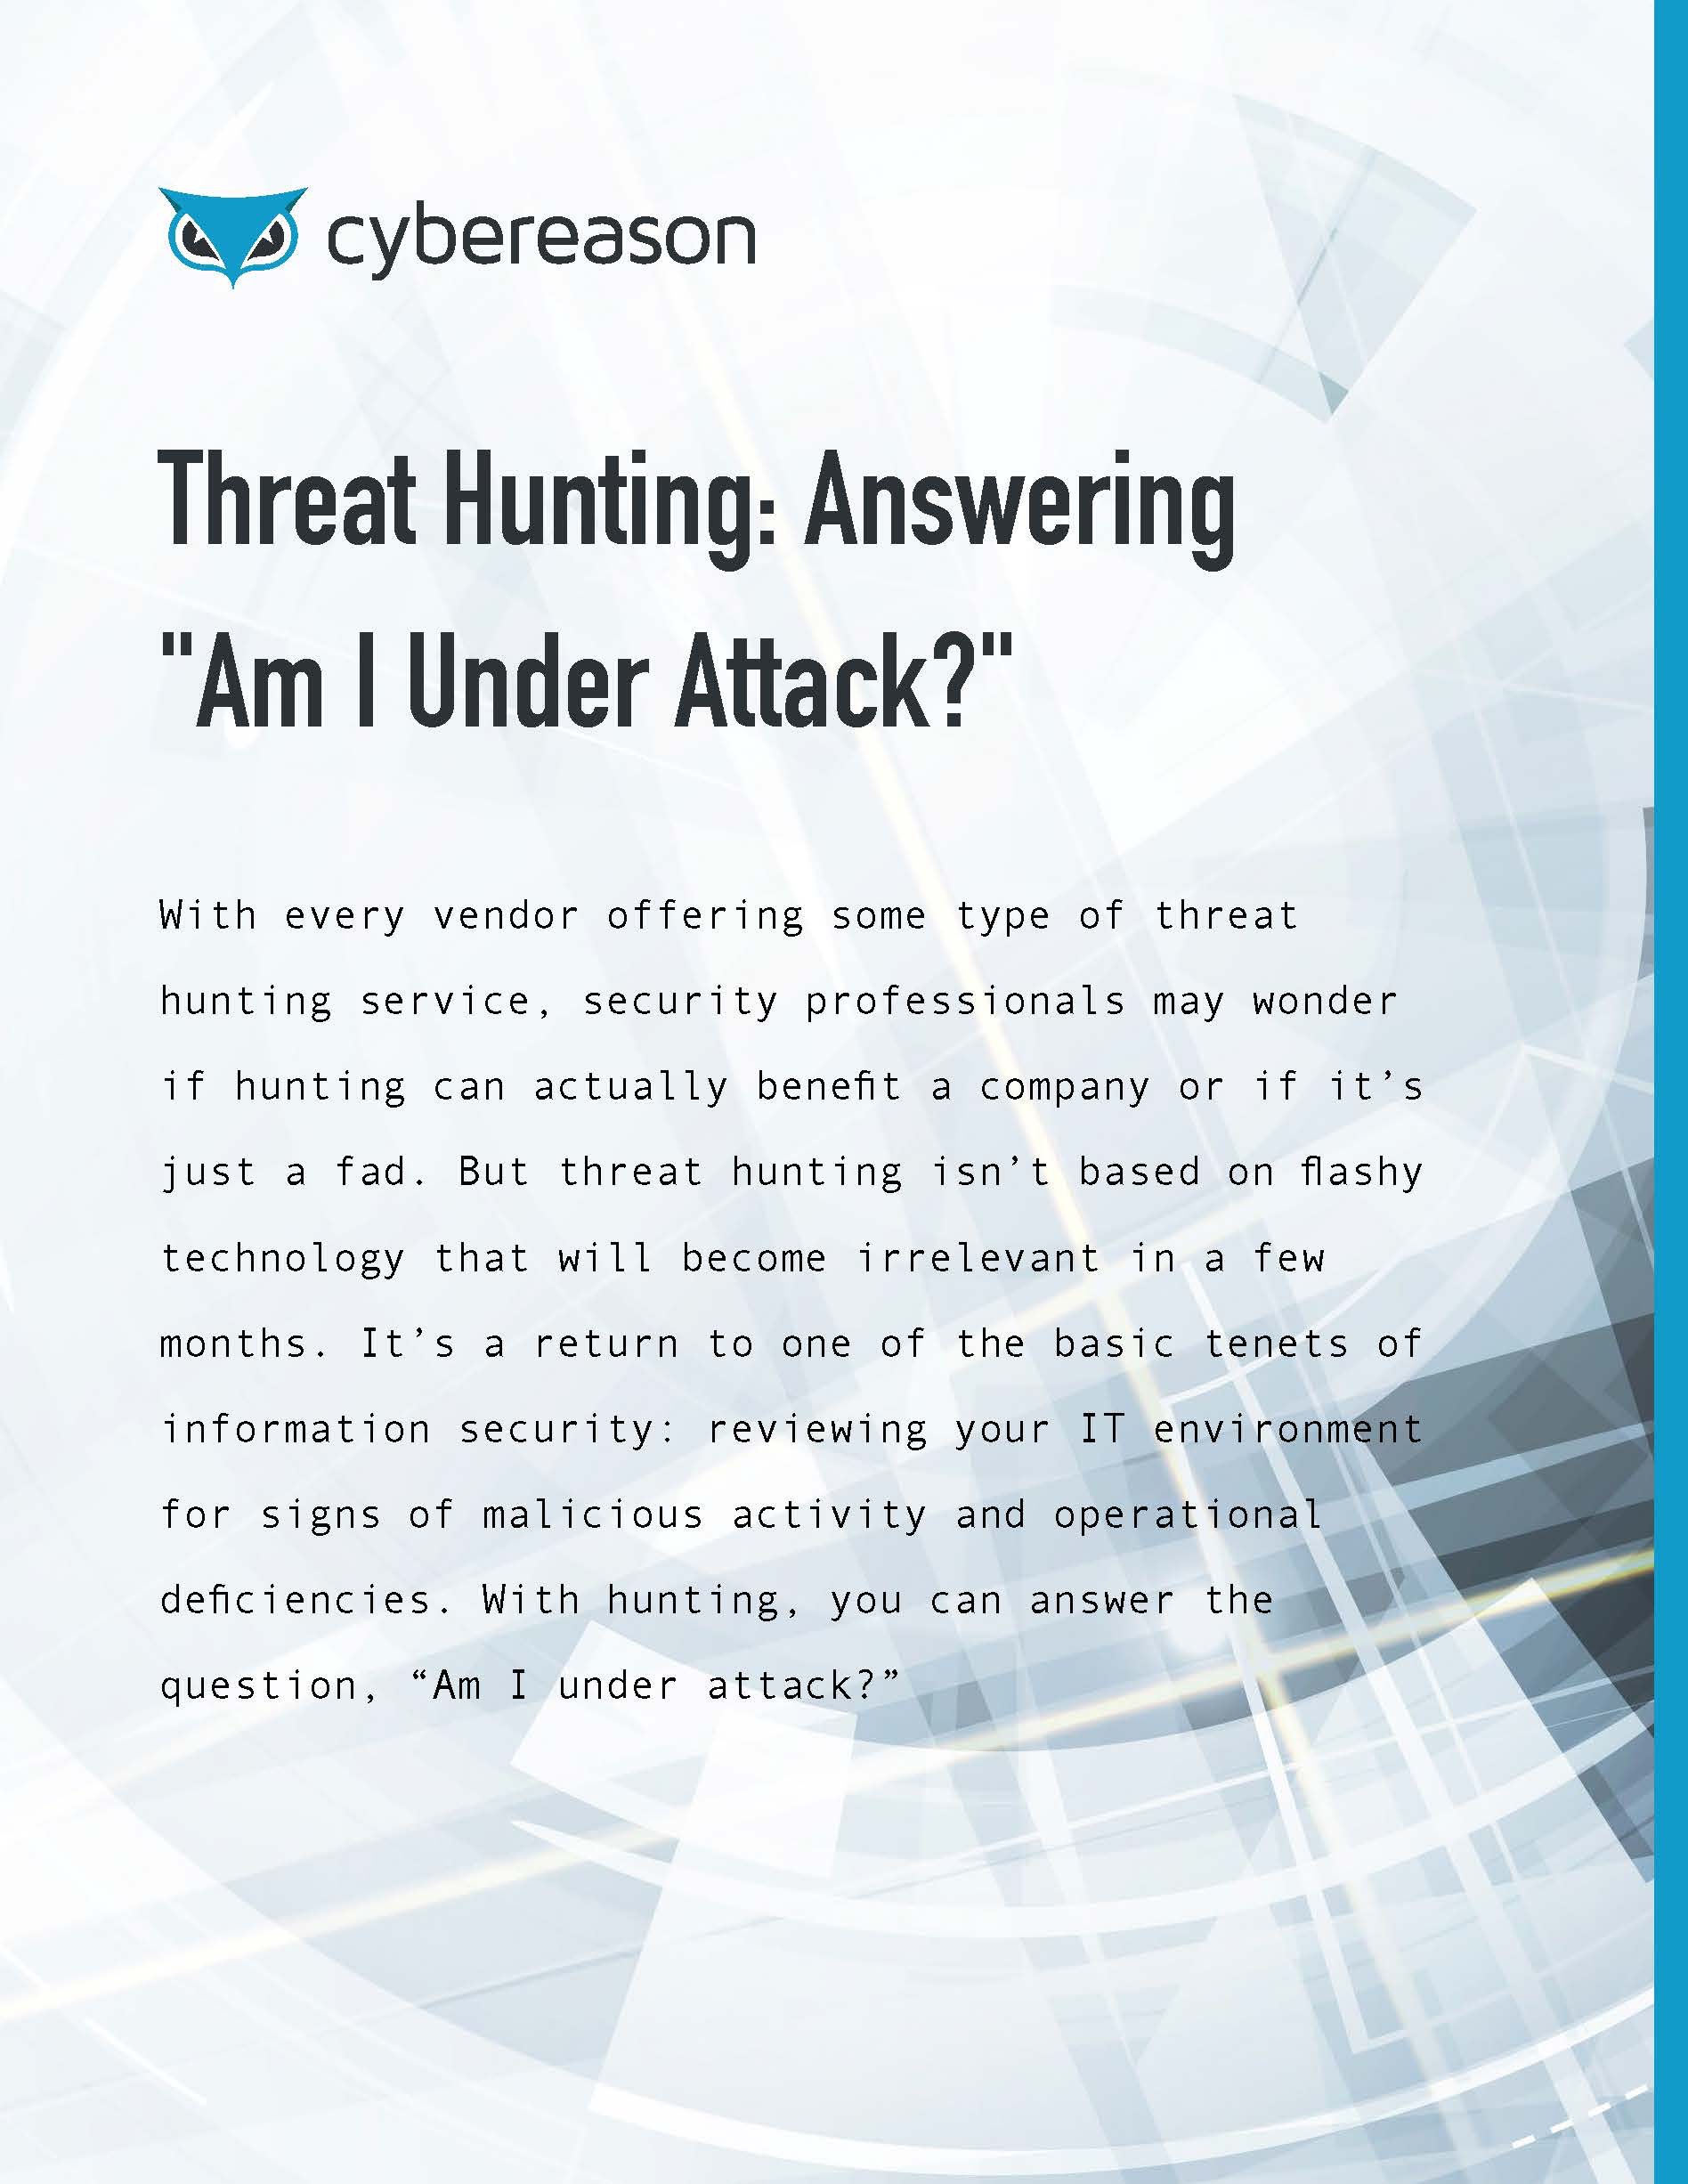 Cyber Threat Hunting Answering Am I Under Attack?